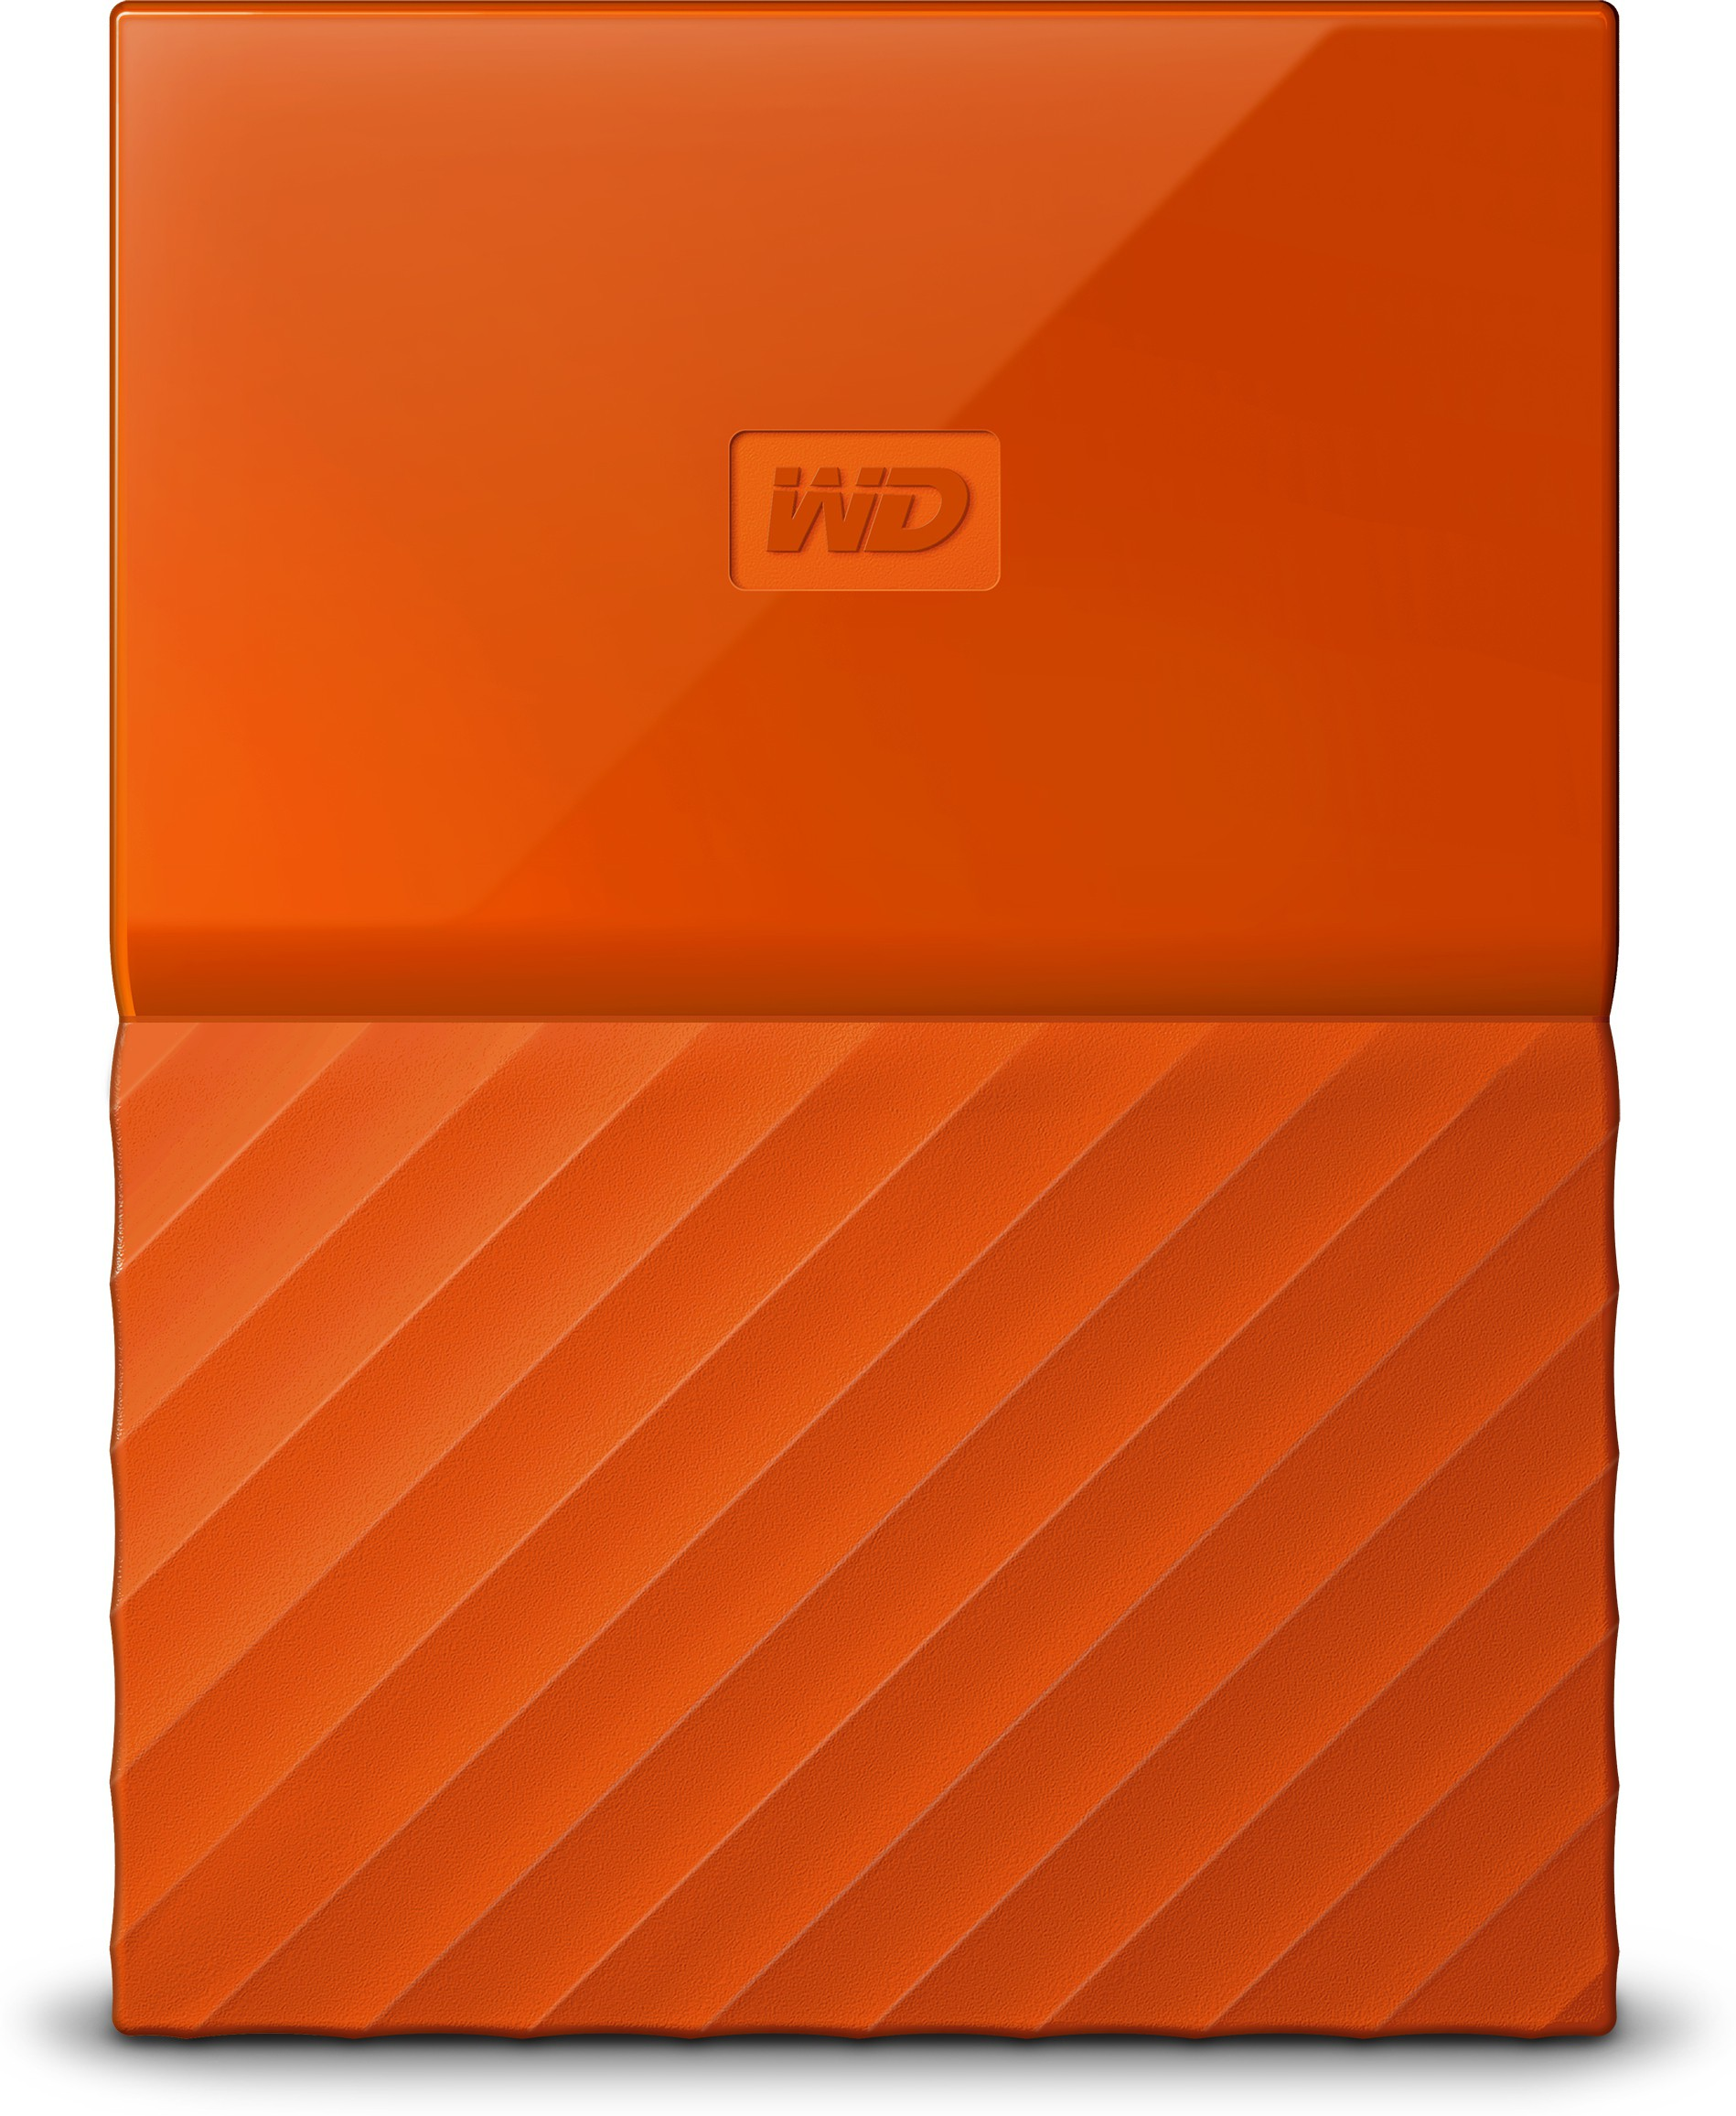 WD My Passport 1 TB Wired External Hard Disk Drive(Orange)   Computer Storage  (WD)